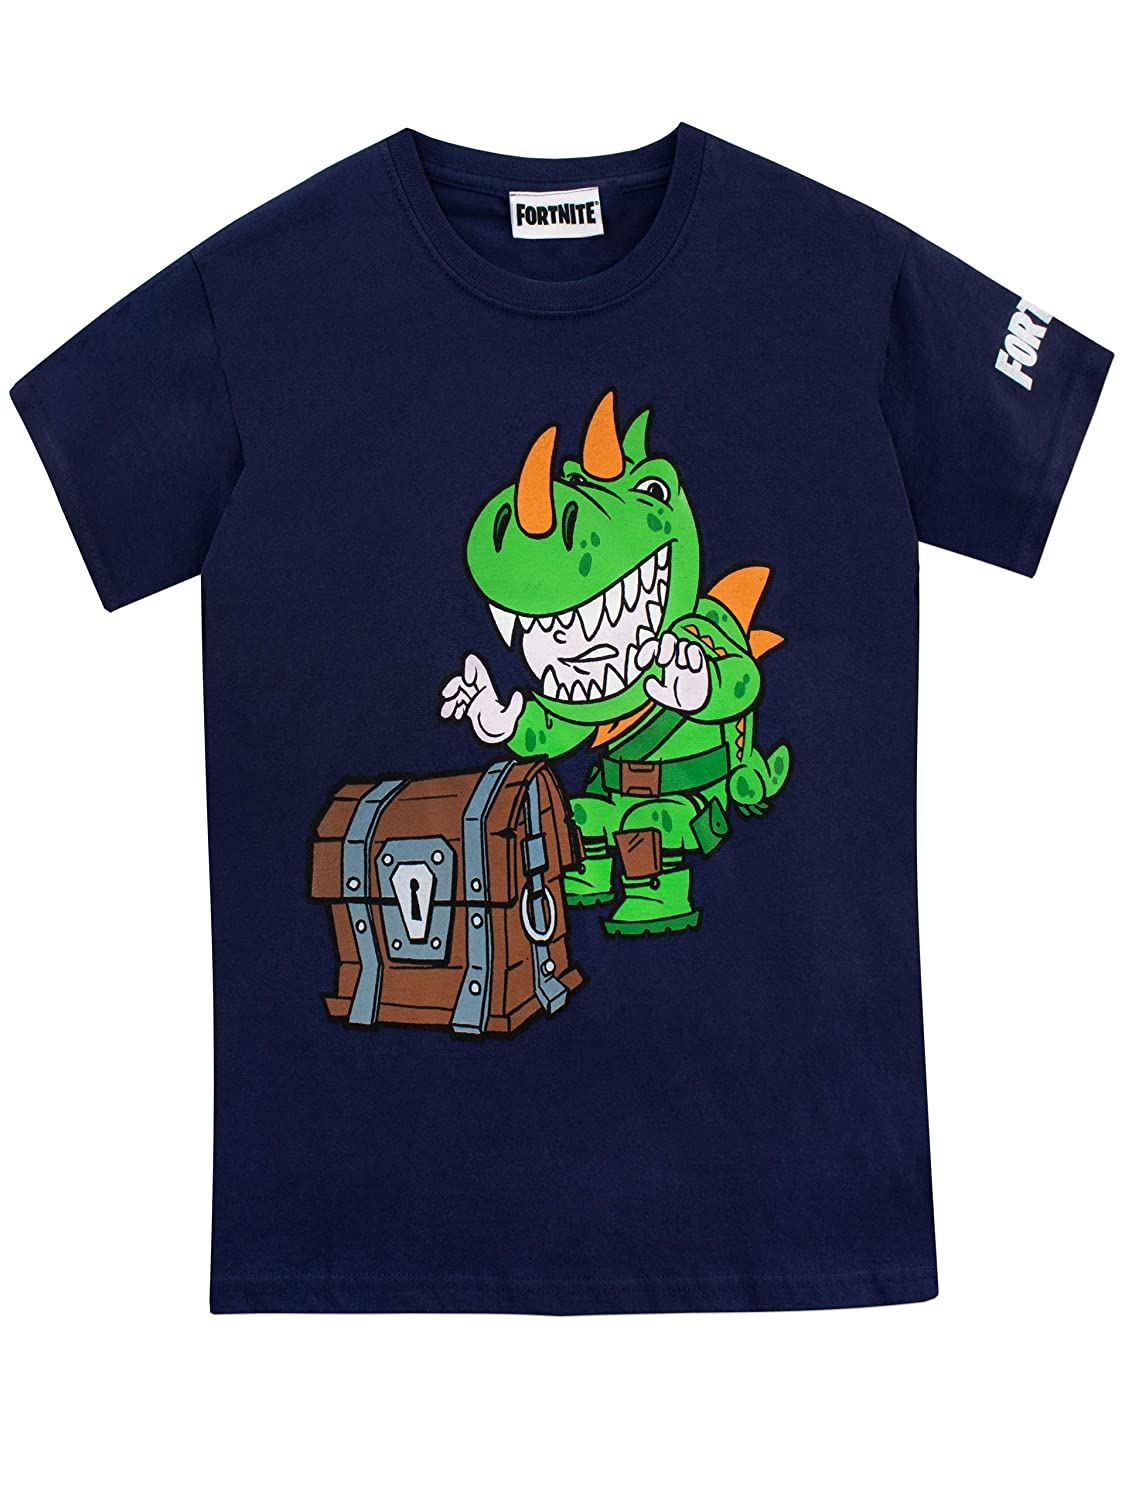 b35d9c3e3 Amazon.com: Fortnite Boys' T-Shirt: Clothing